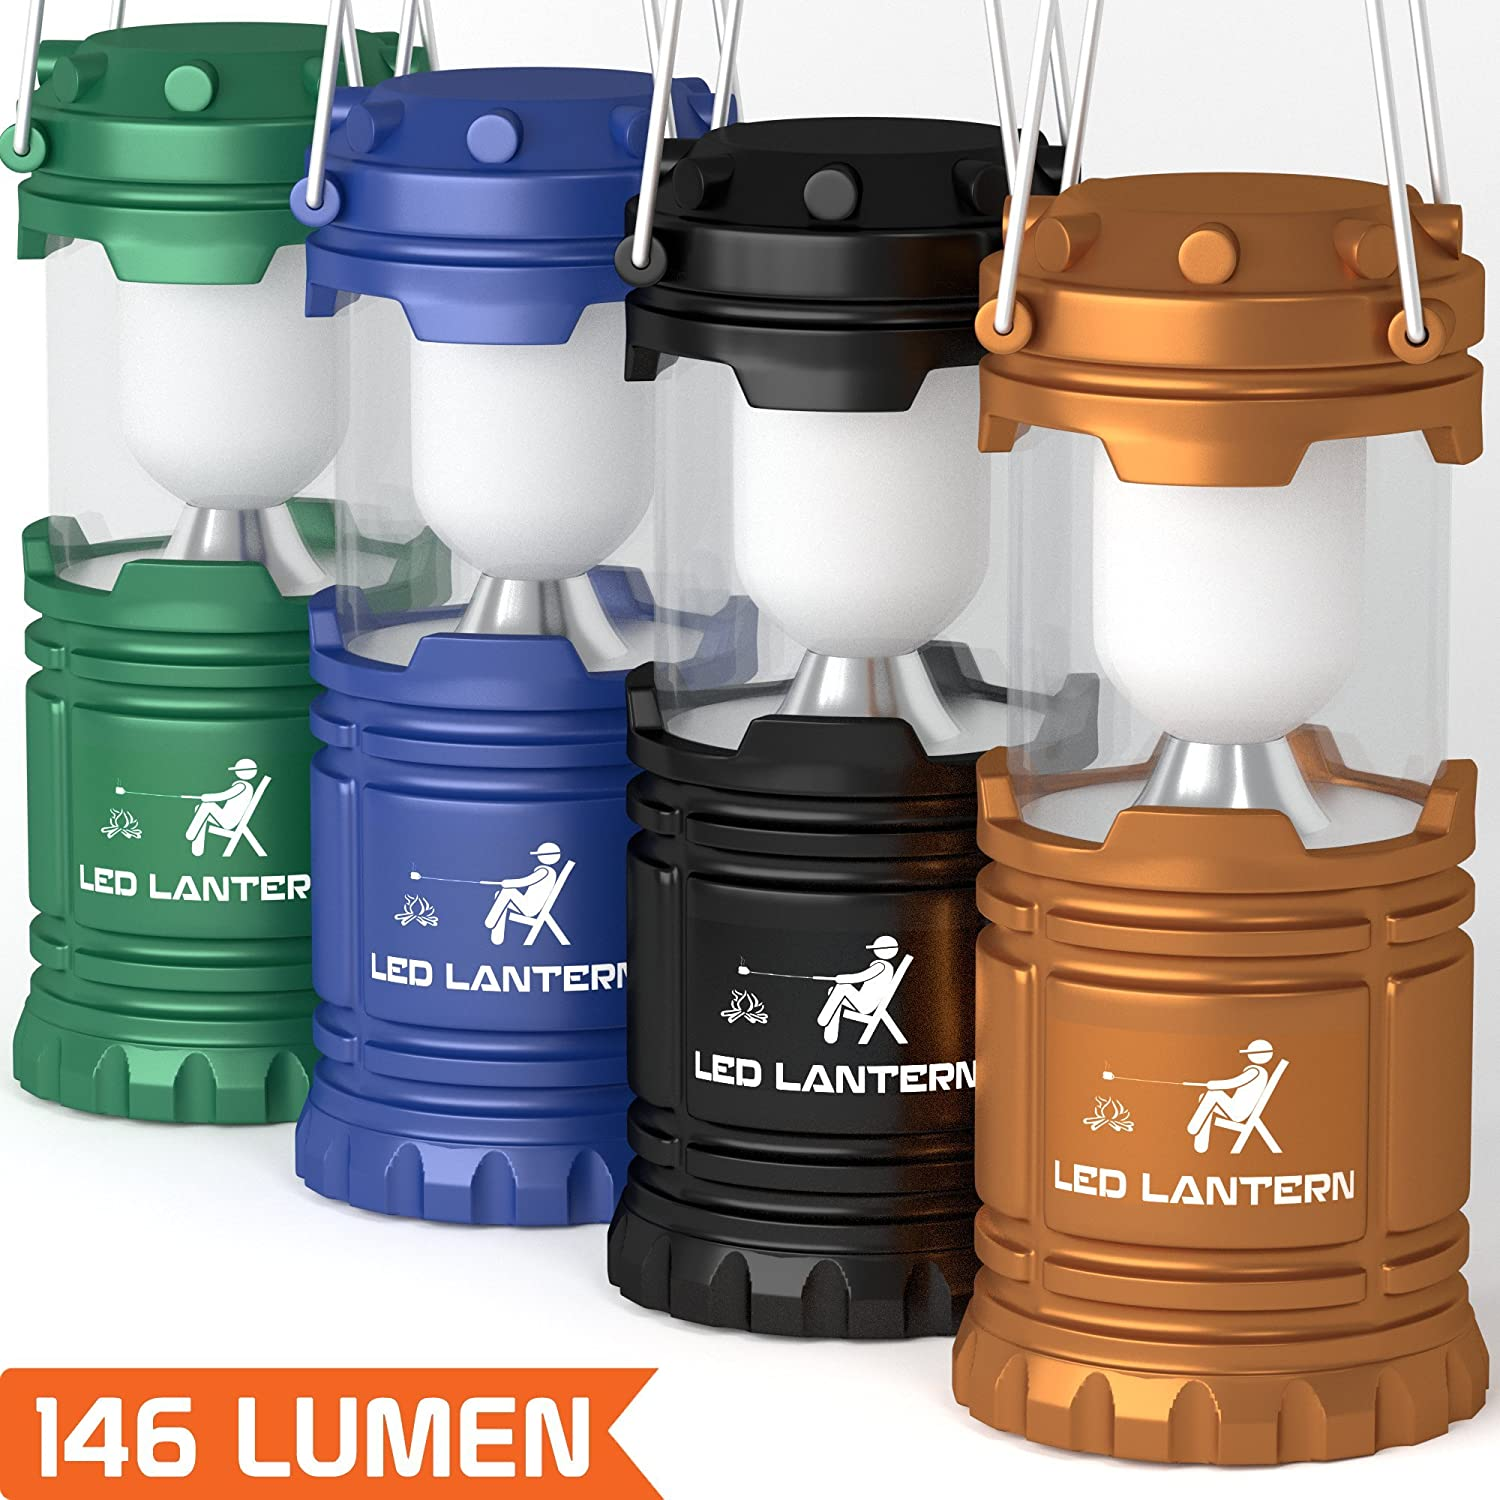 LED Camping Lantern Flashlights - Hurricane Emergency Tent Light - Backpacking, Hiking, Fishing, & Outdoor Lighting Bug Out Bag Camping Equipment | Portable, Compact, & Water Resistant Gift